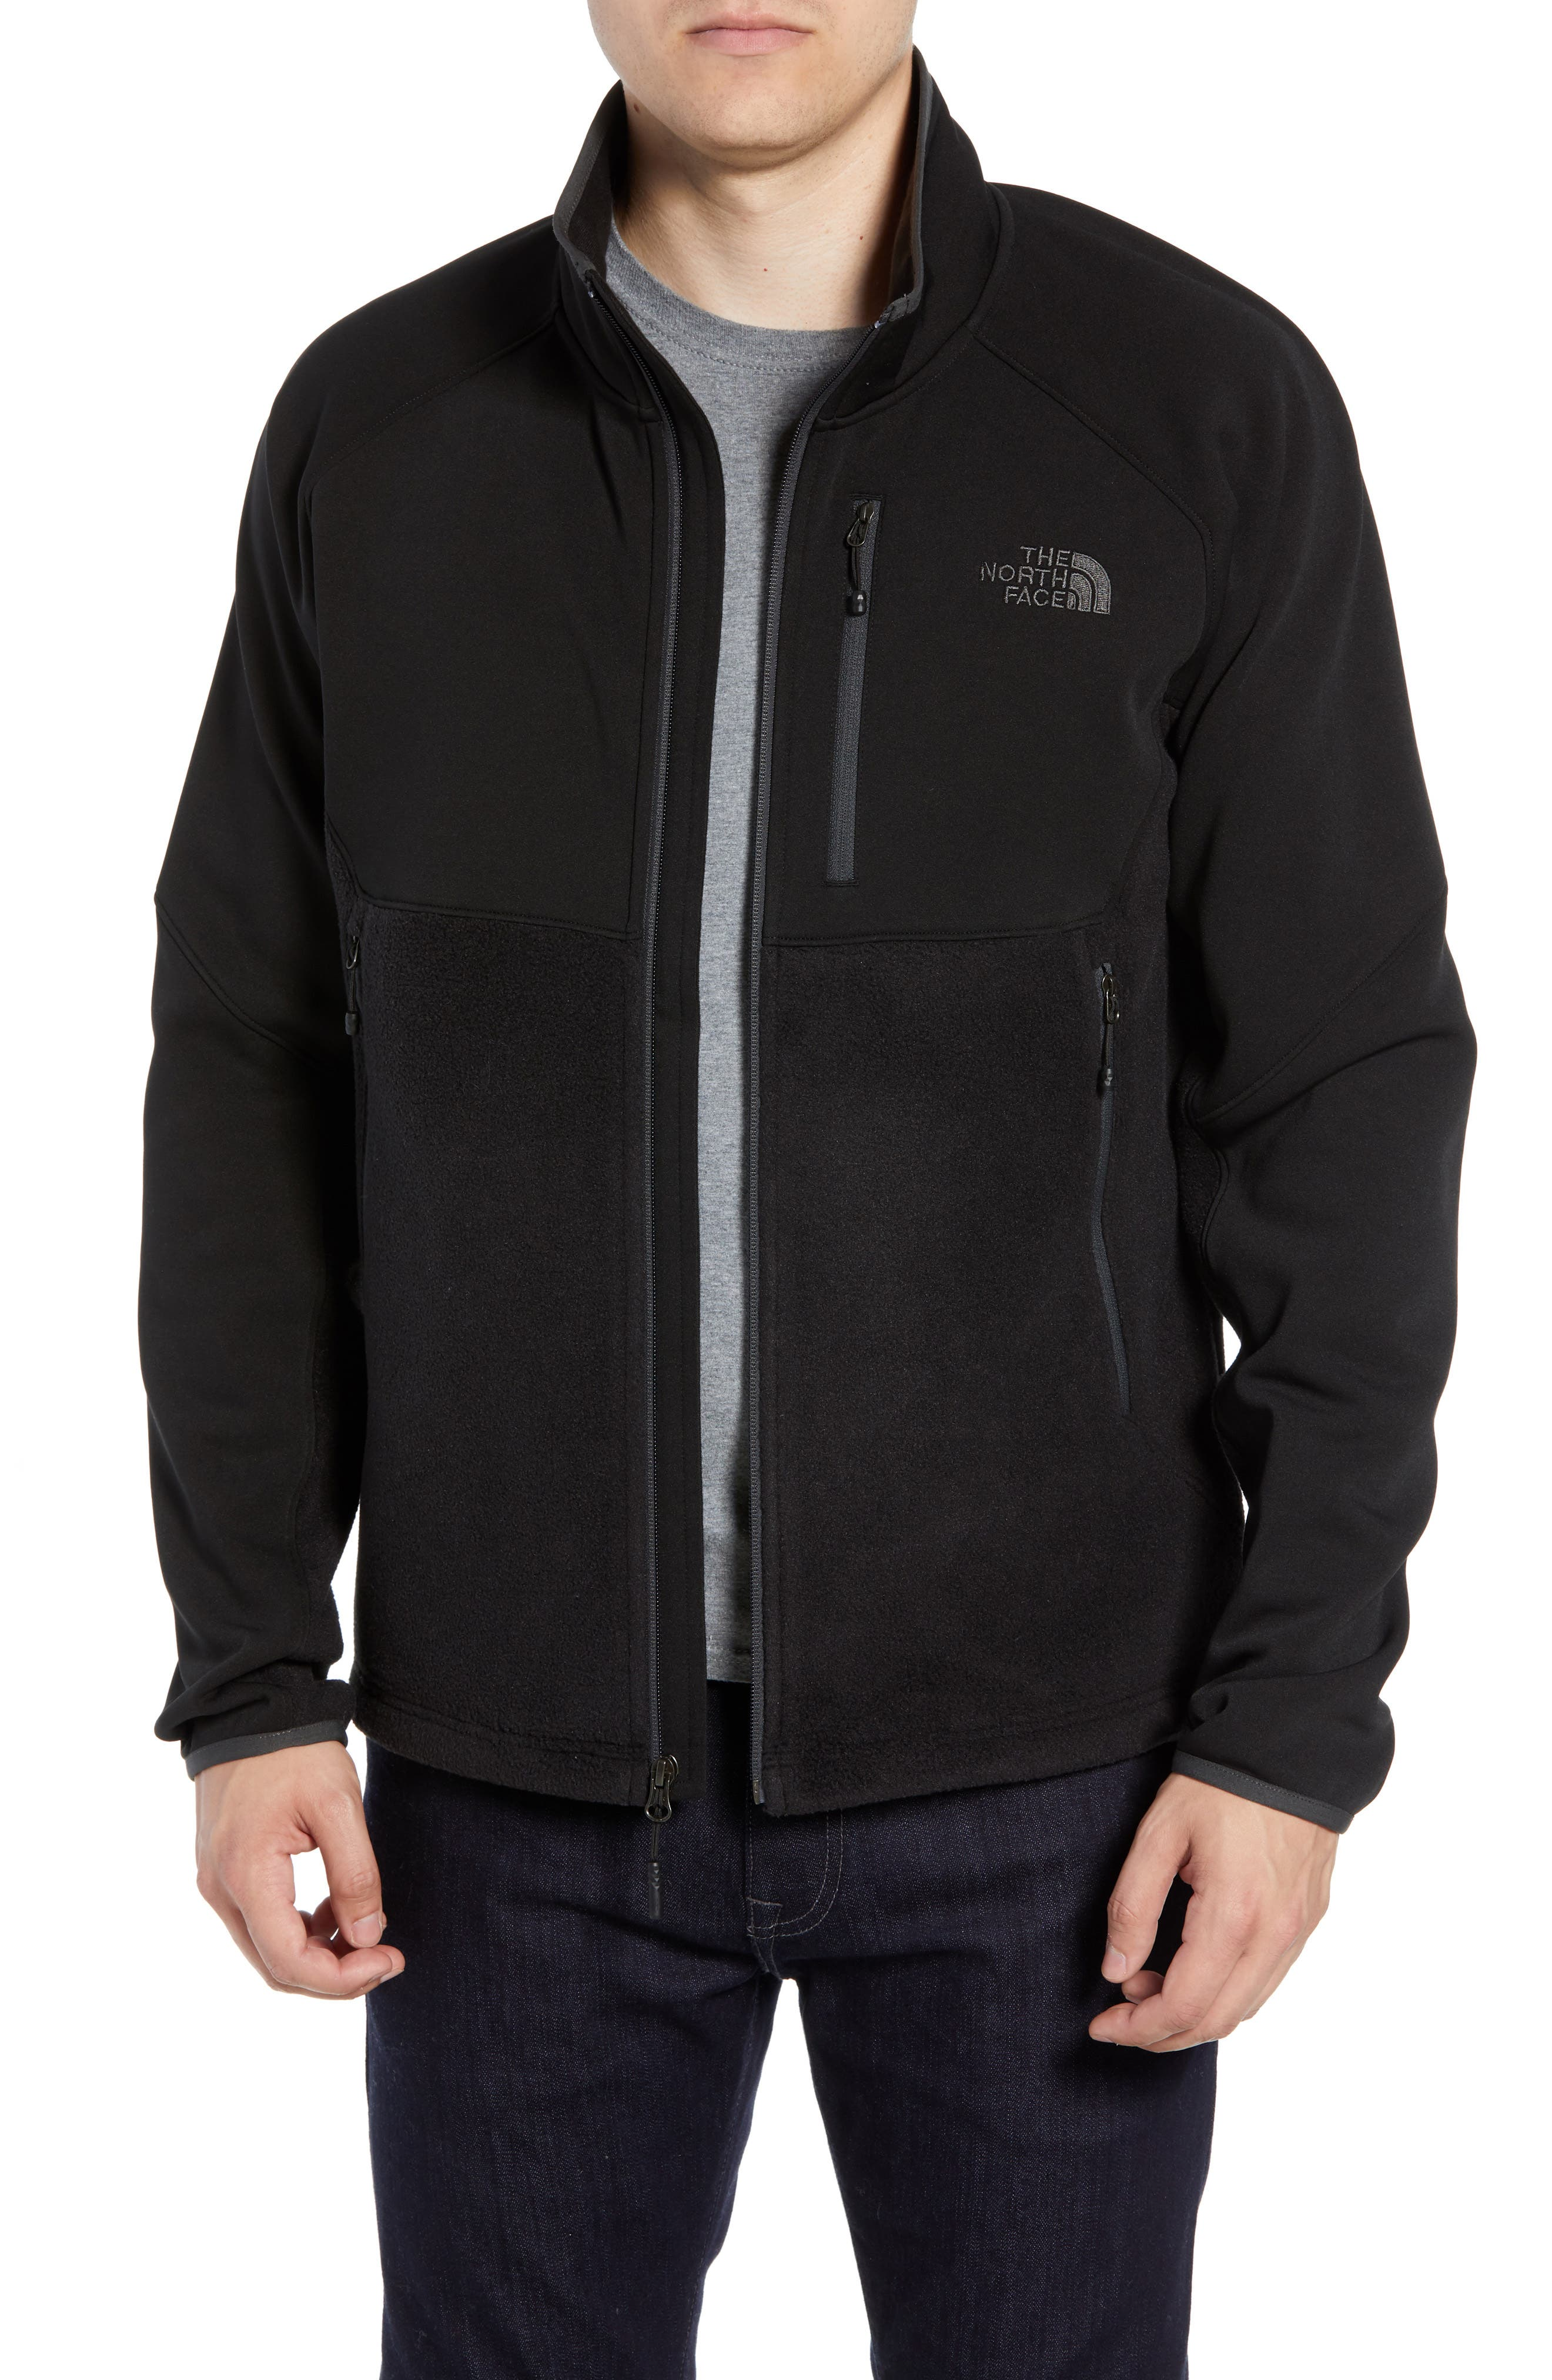 THE NORTH FACE, Tolmie Peak Hybrid Water Repellent Zip Jacket, Main thumbnail 1, color, 001